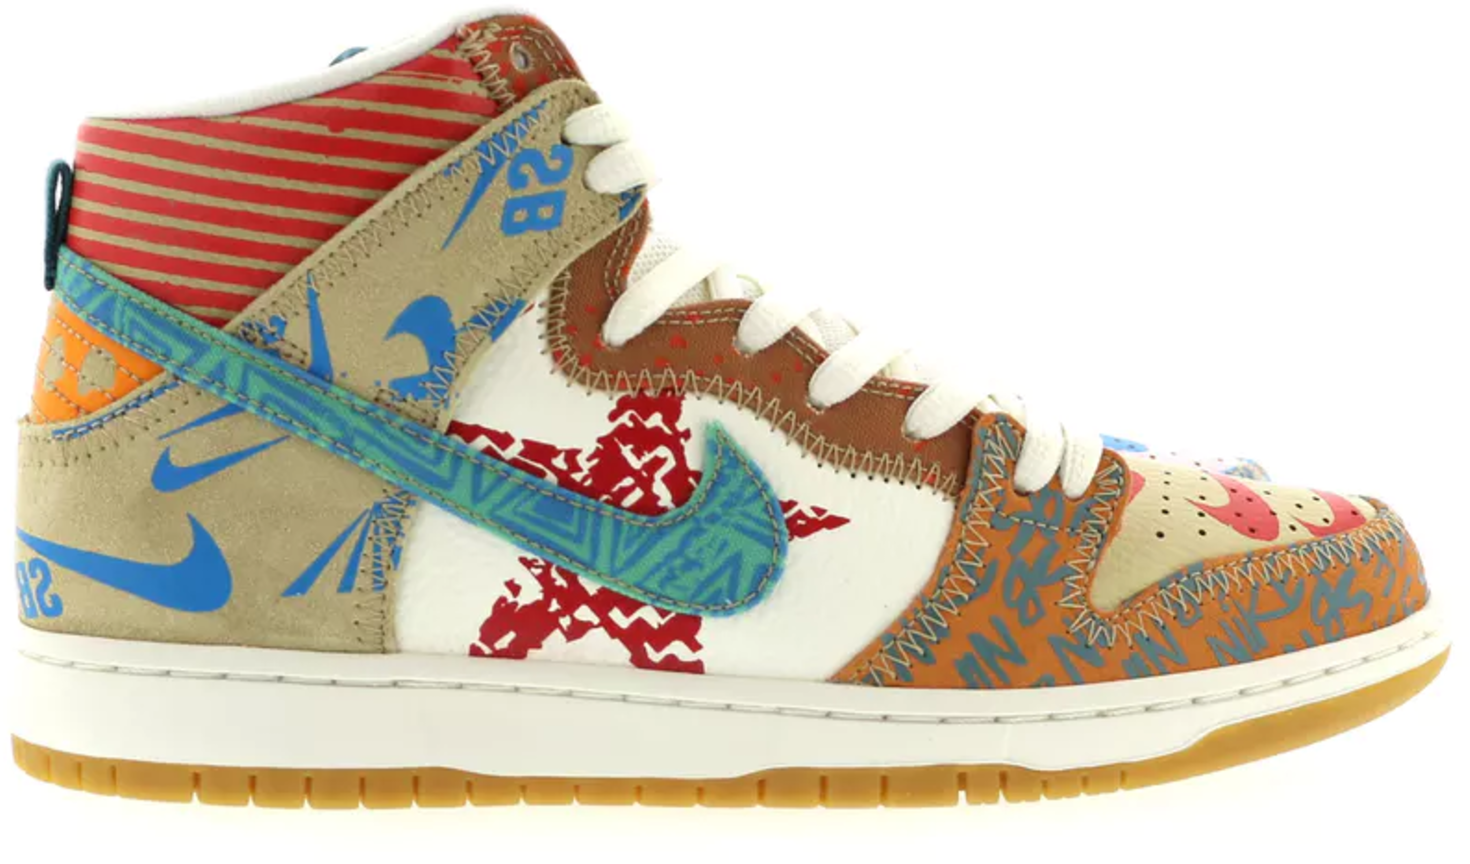 Nike SB Dunk High Thomas Campbell What The Dunk (Special Box)